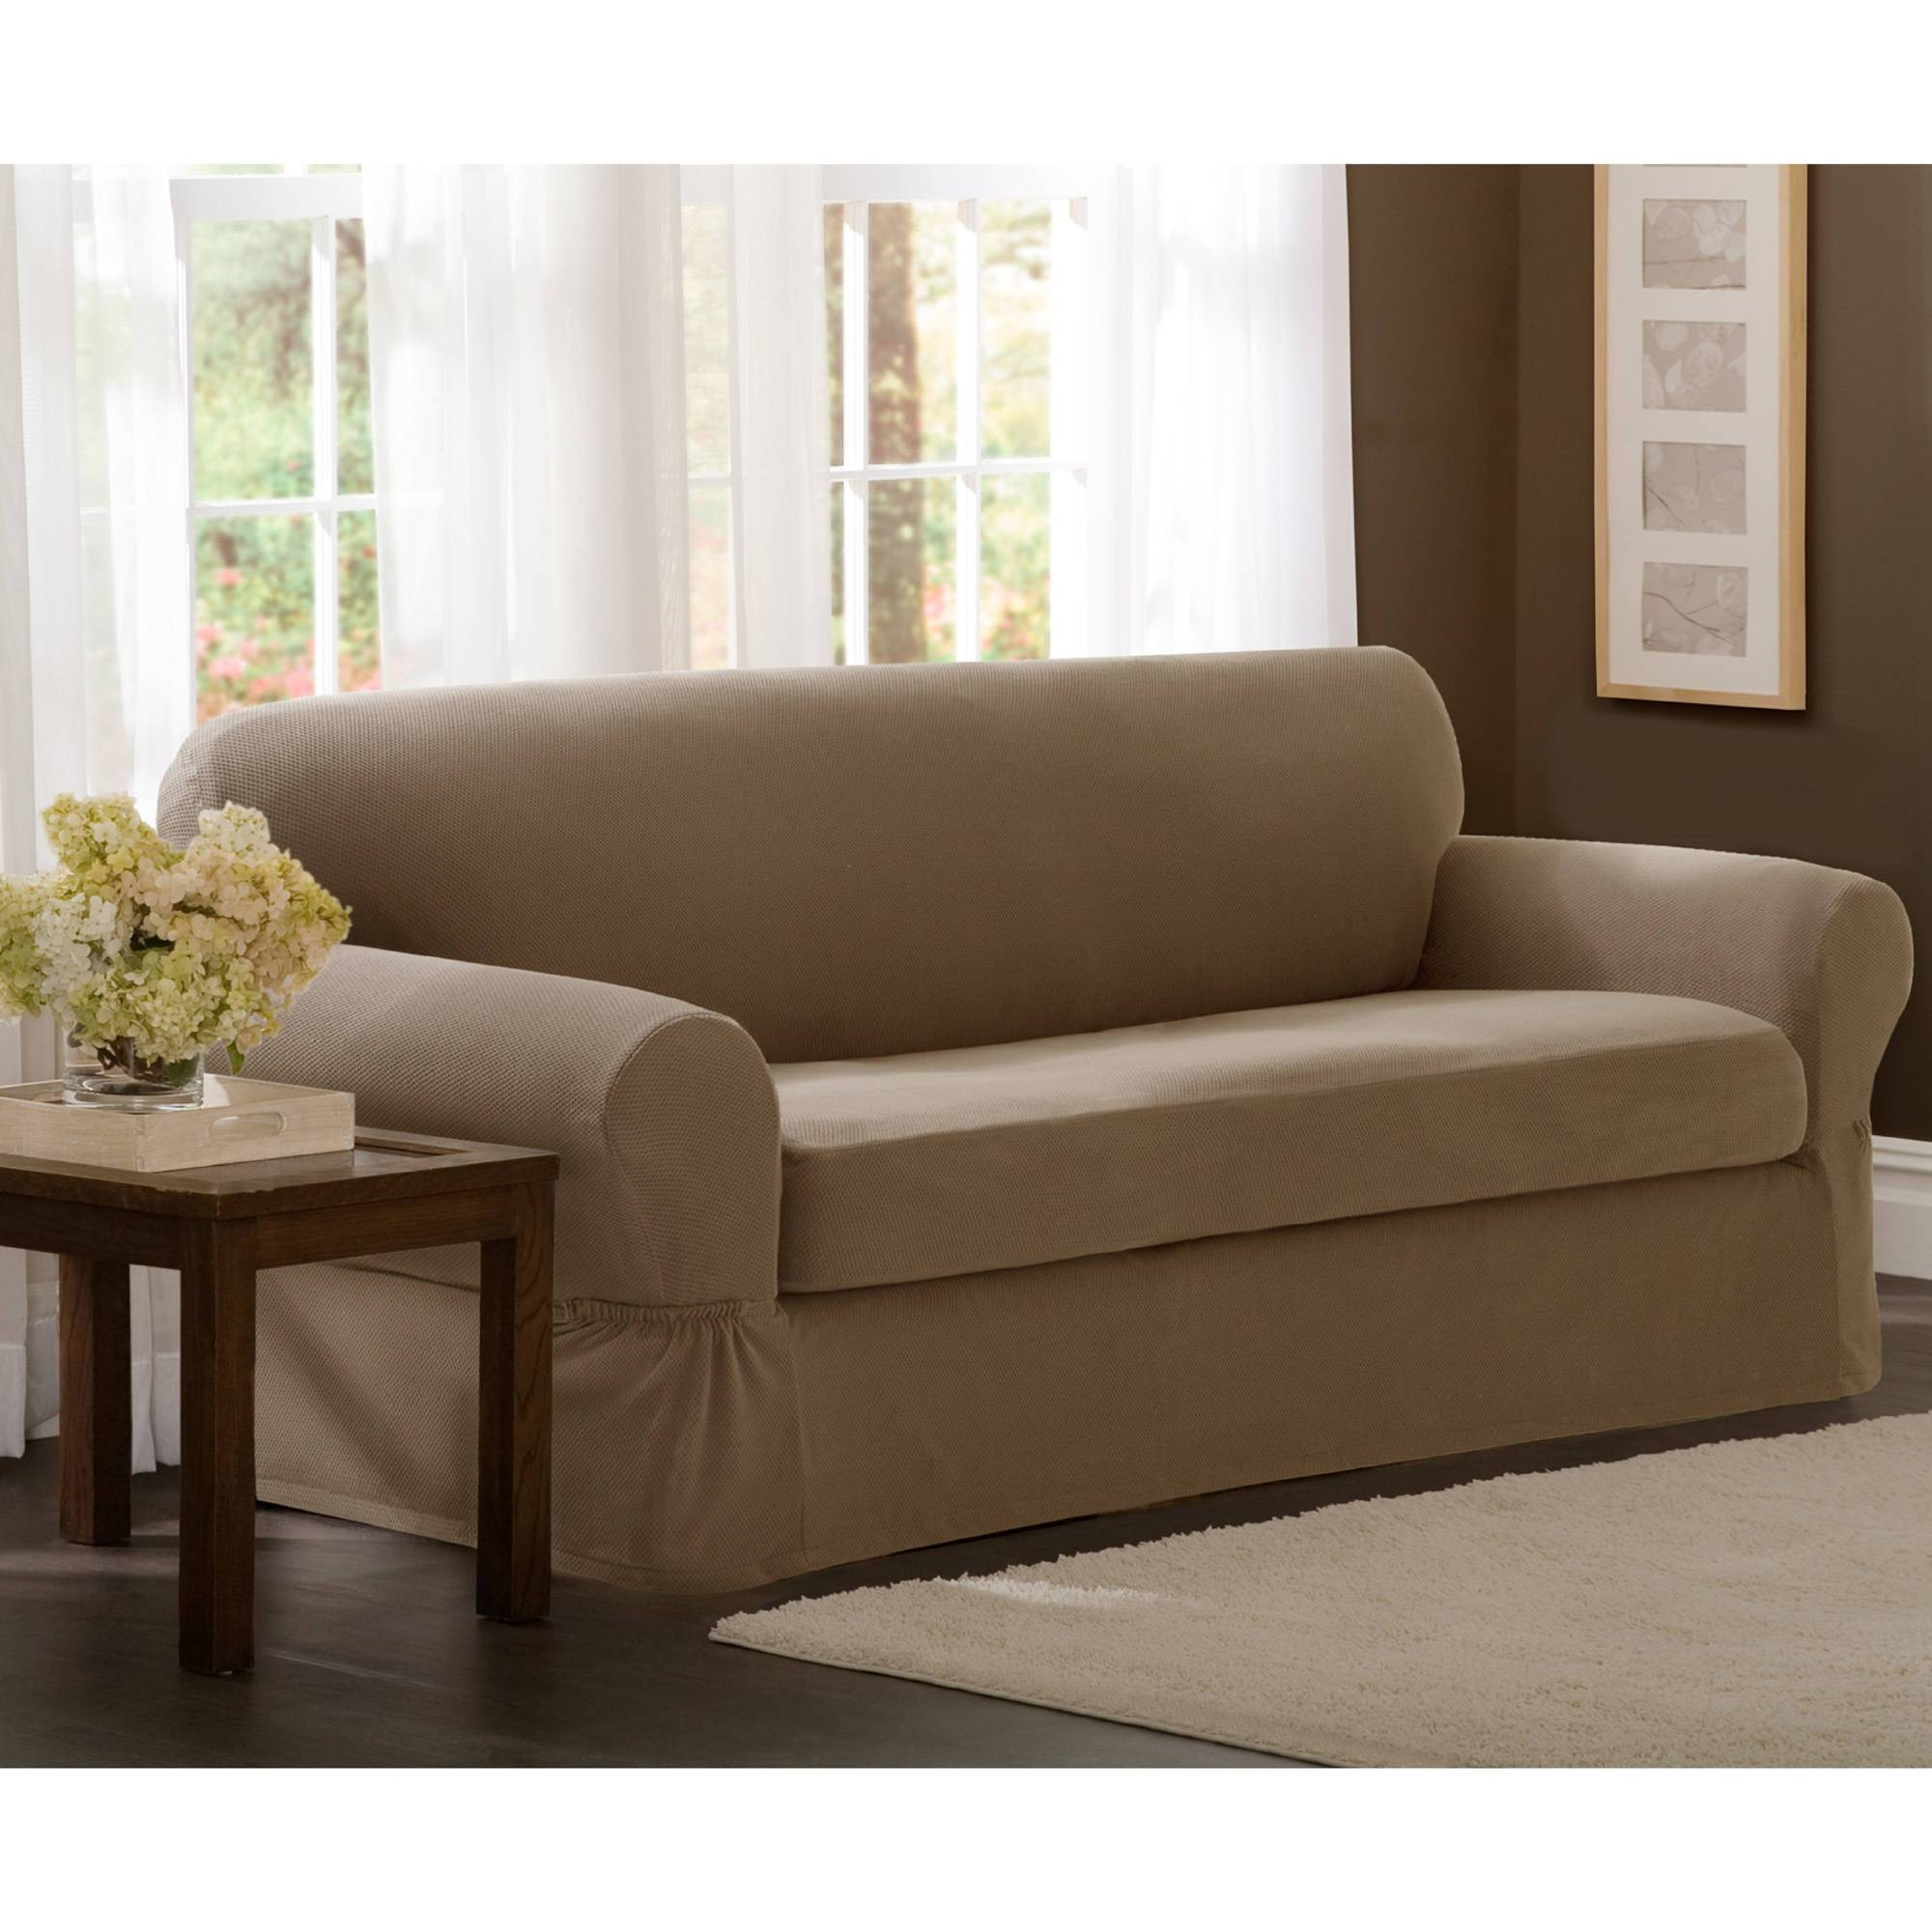 Maytex Stretch 2-Piece Sofa Slipcover - Walmart regarding Stretch Slipcover Sofas (Image 9 of 15)